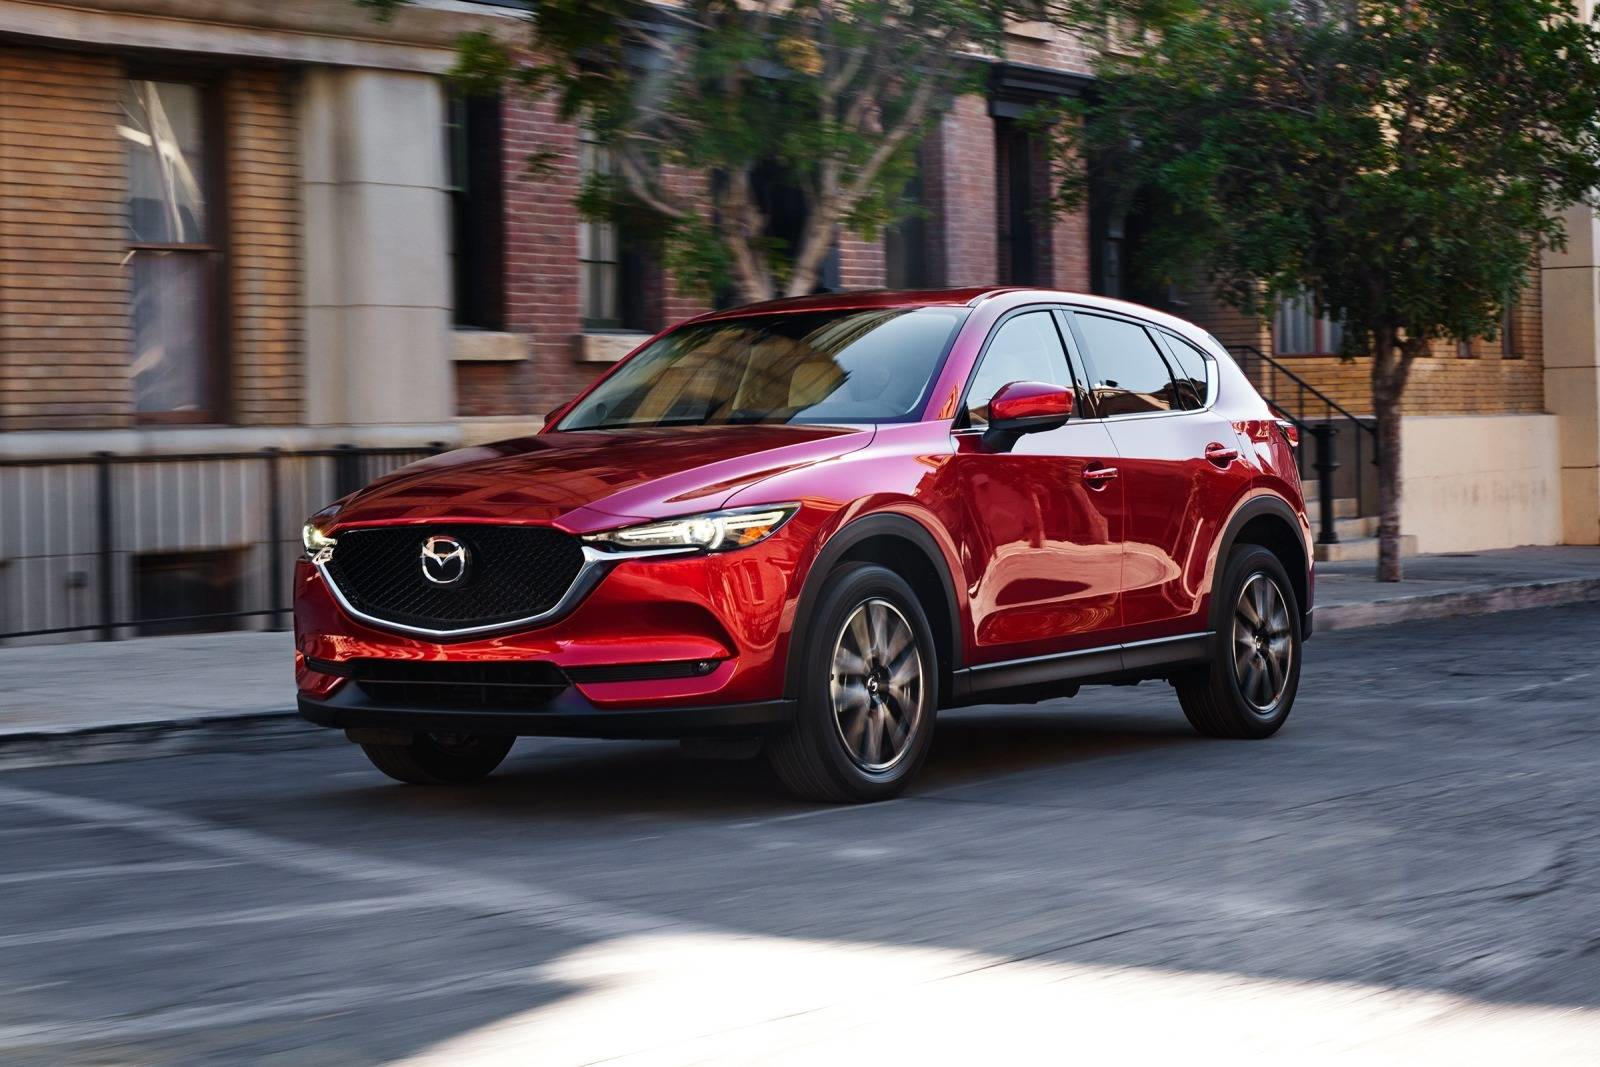 three mazda package first look from news small review expected things hyundai front kona suv en big quarter